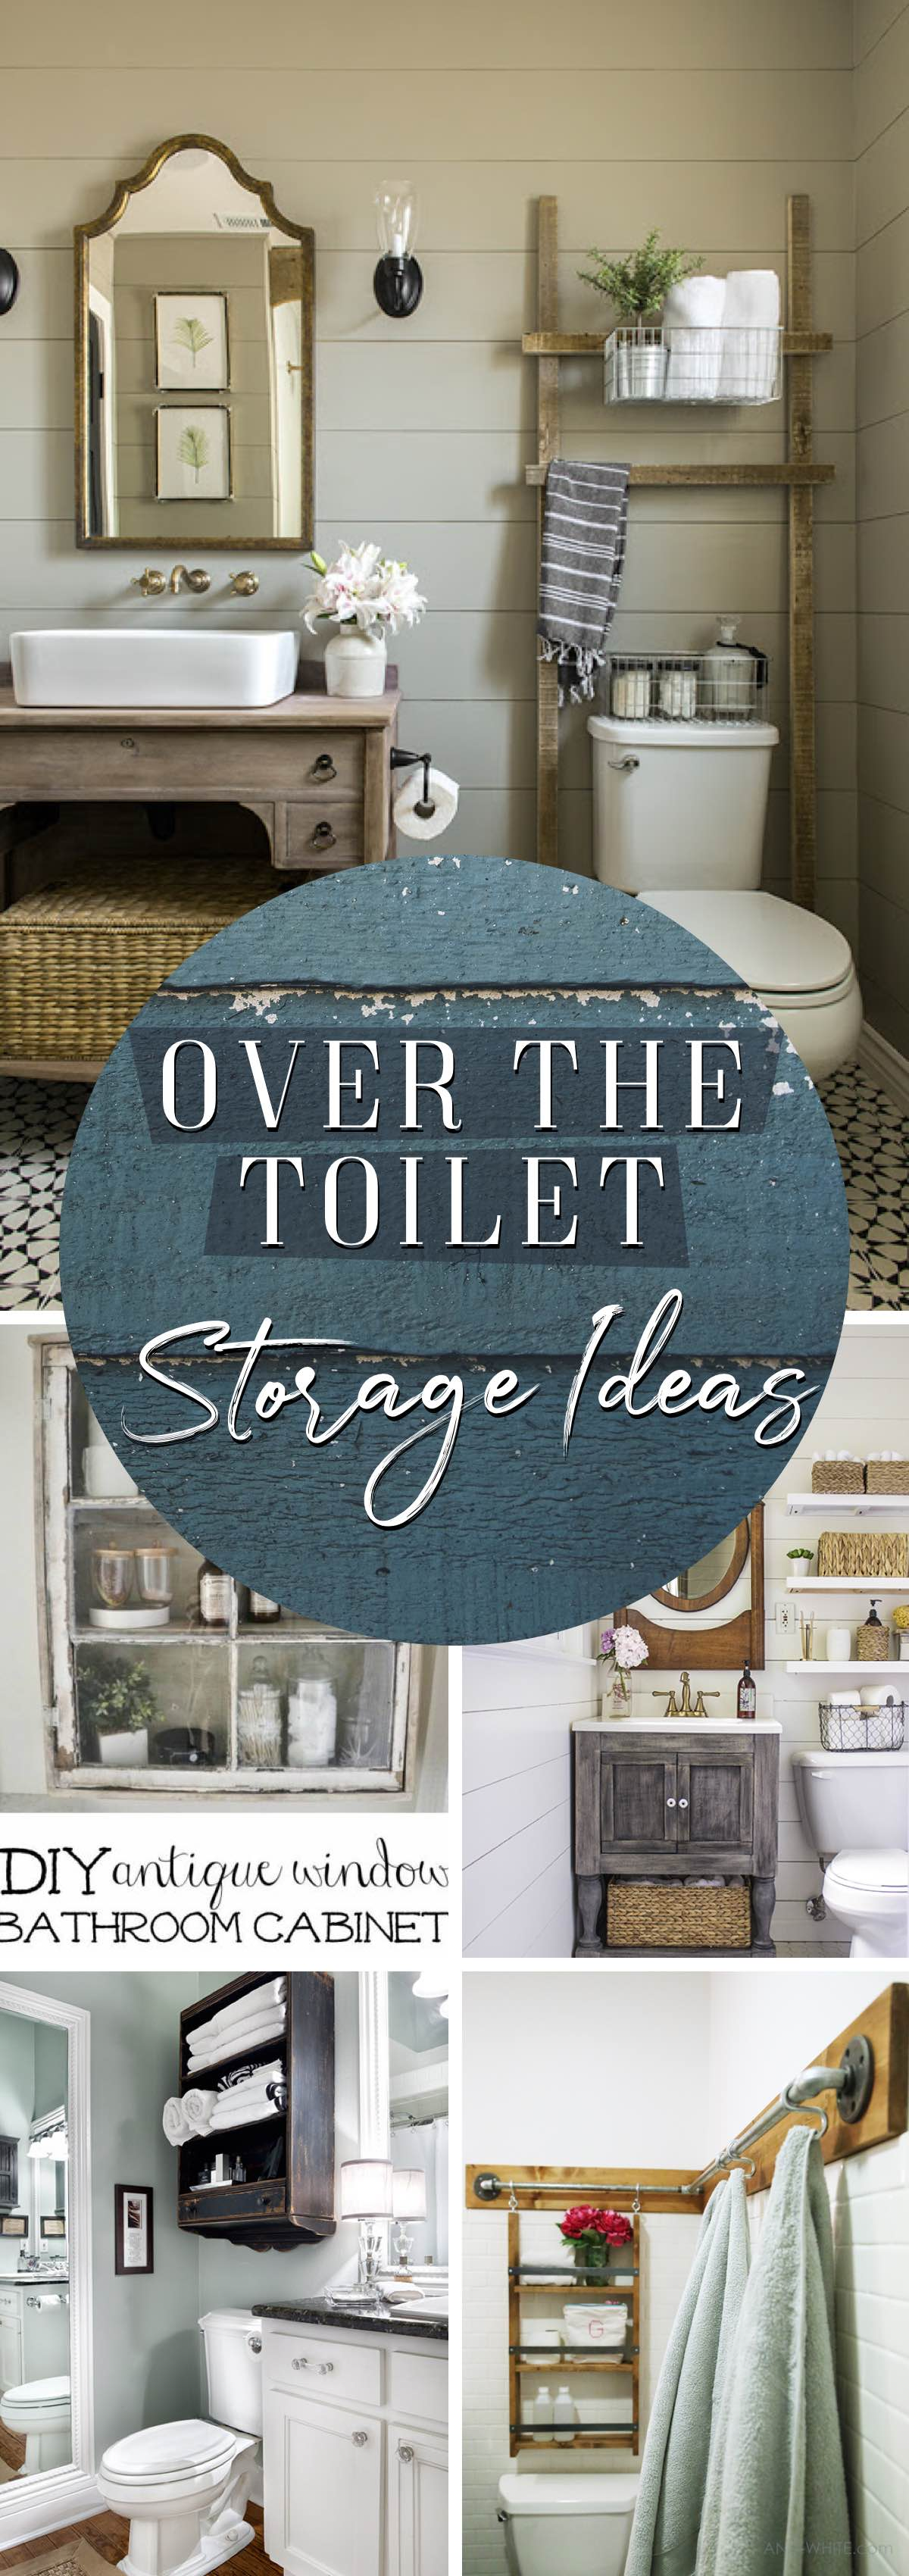 best Over The Toilet Storage Ideas